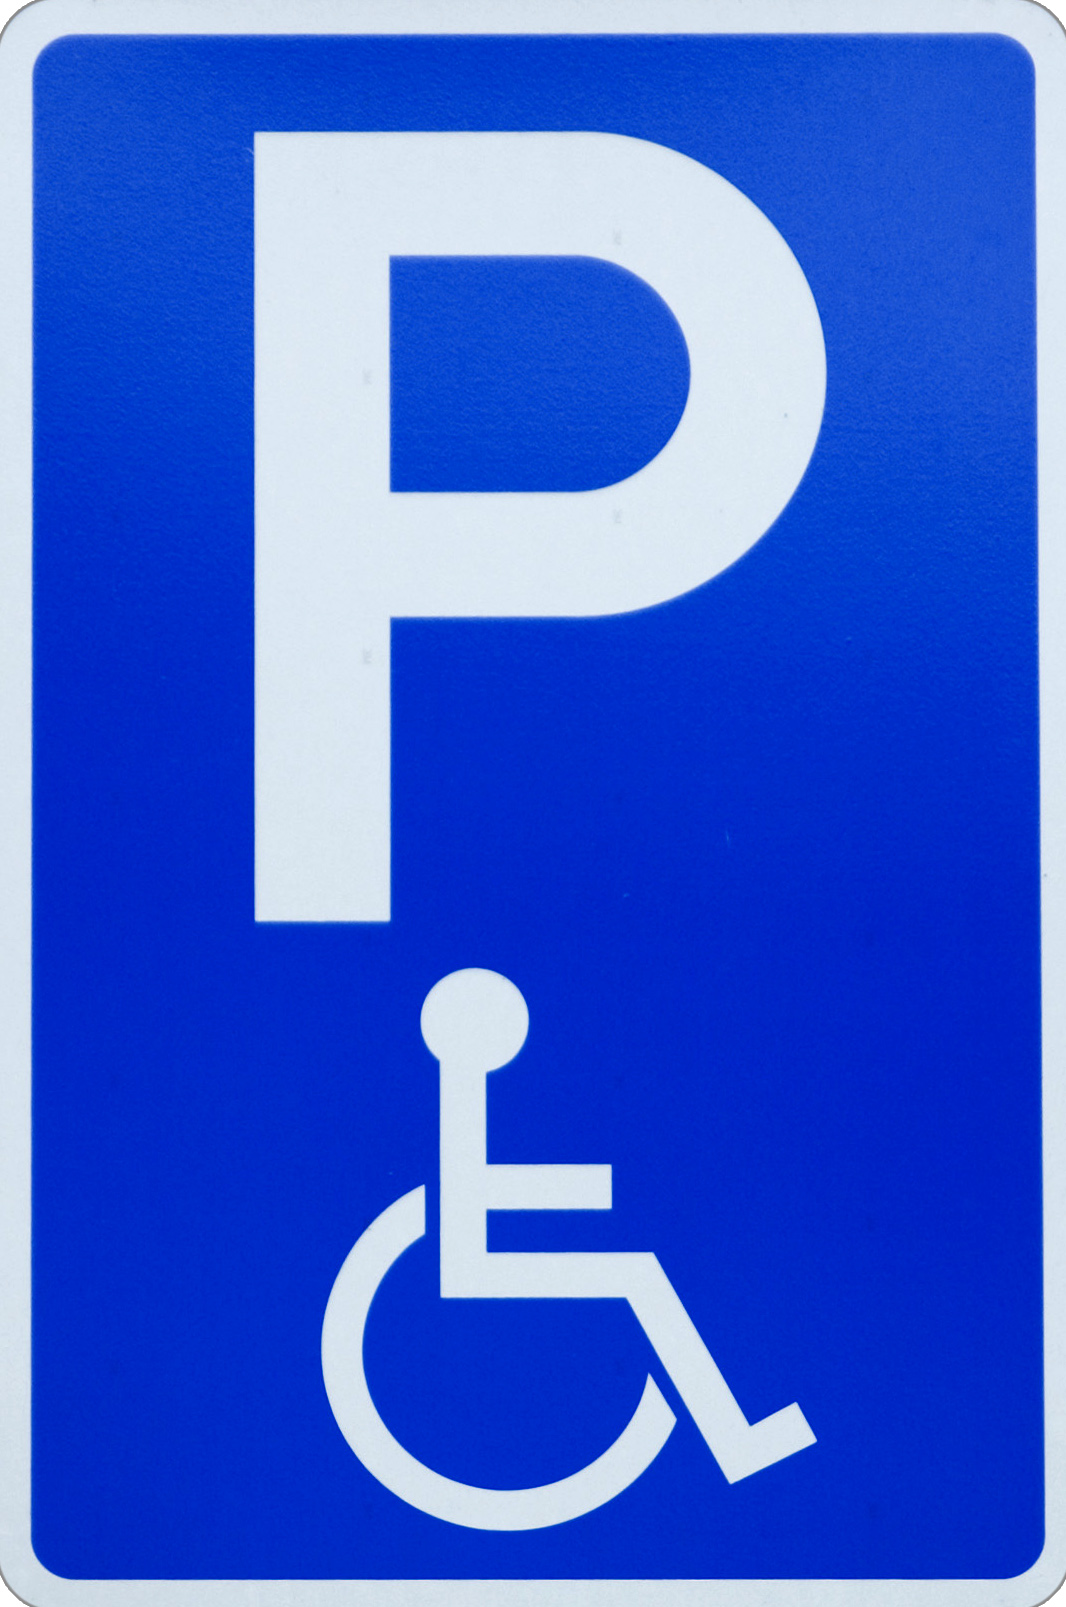 Wheelchair parking sign